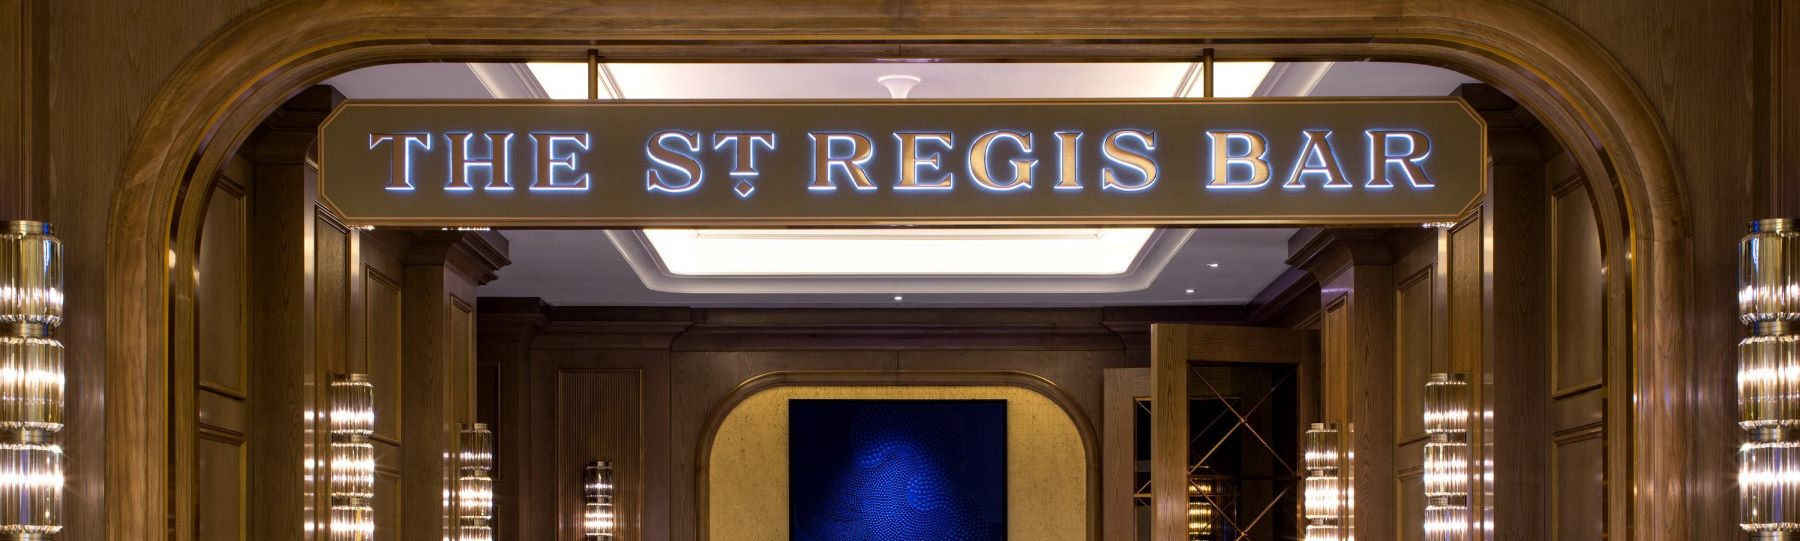 About The St. Regis Bar Macao